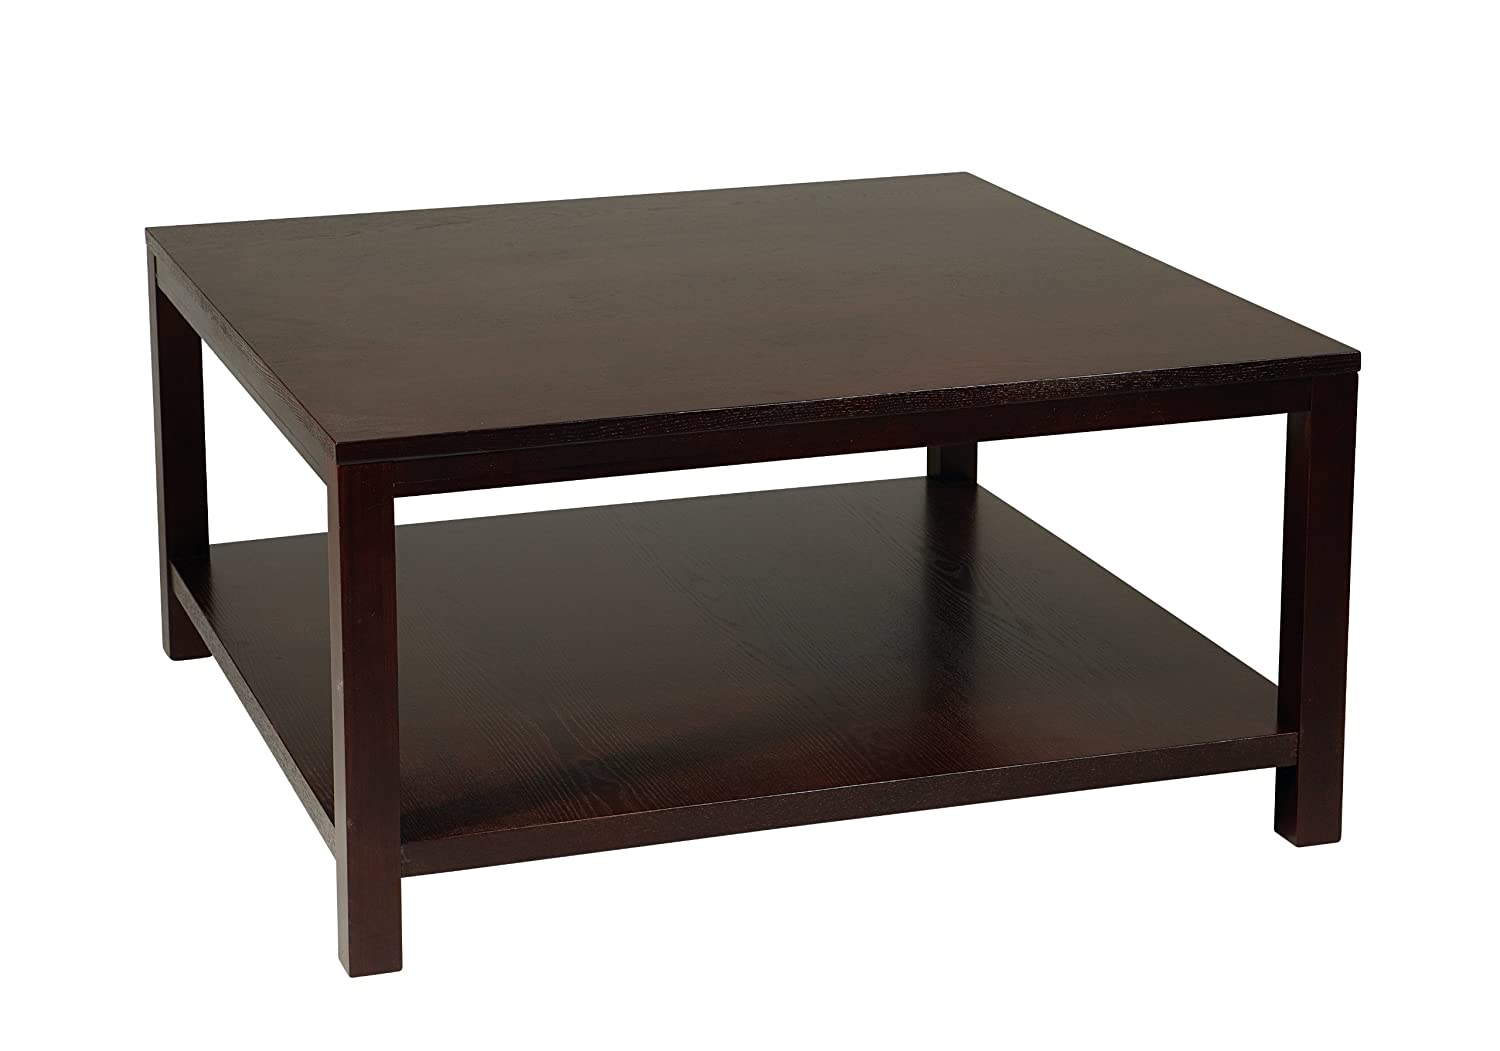 404 squidoo page not found Square coffee table with shelf